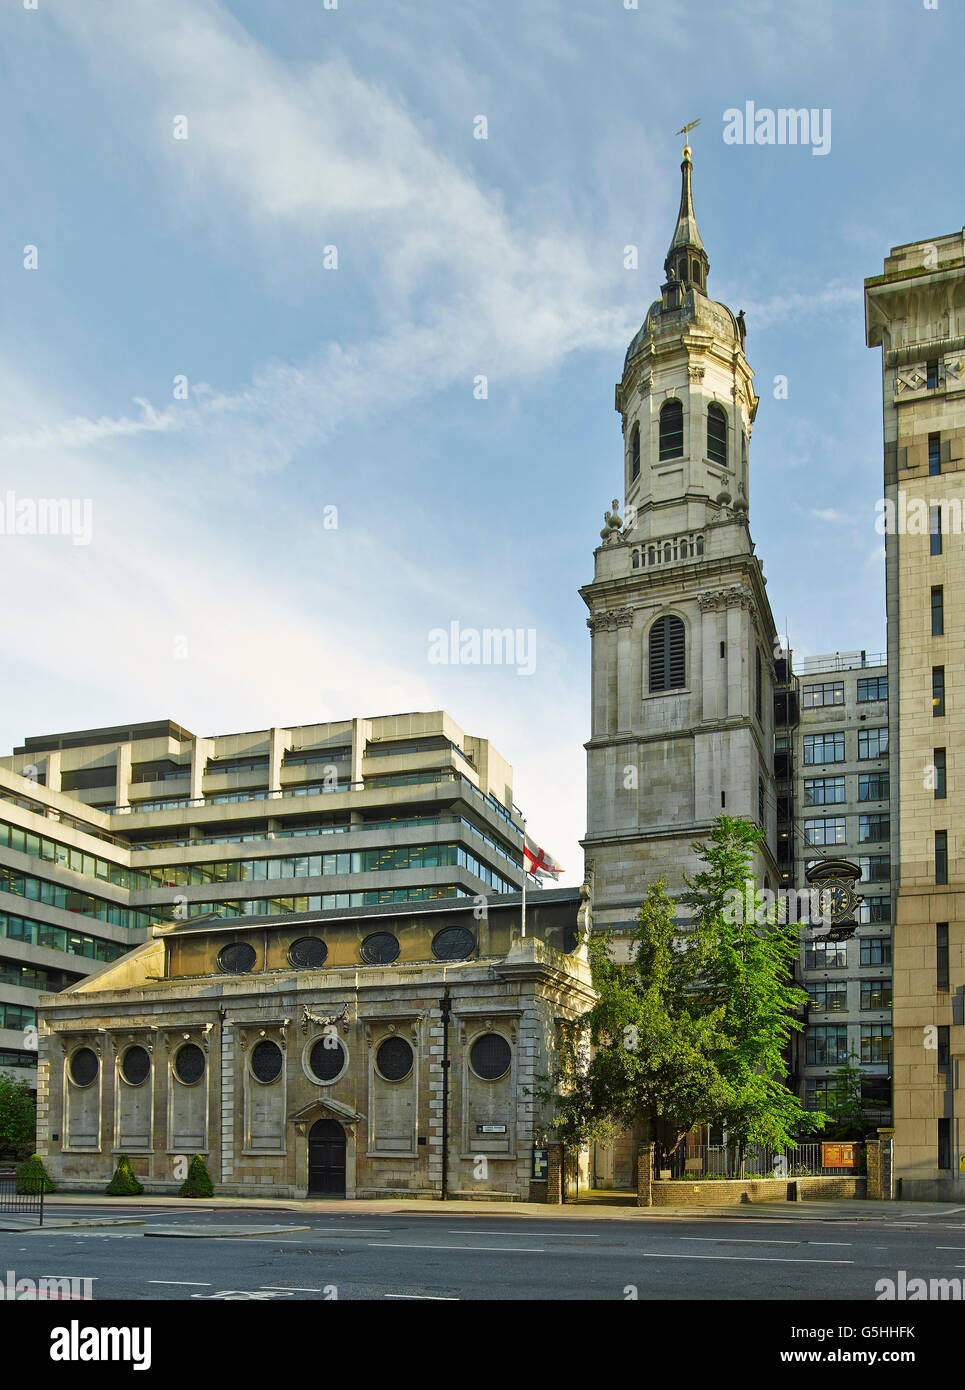 St Magnus the Martyr church in the City of London, north front, by Chrisopher Wren - Stock Image